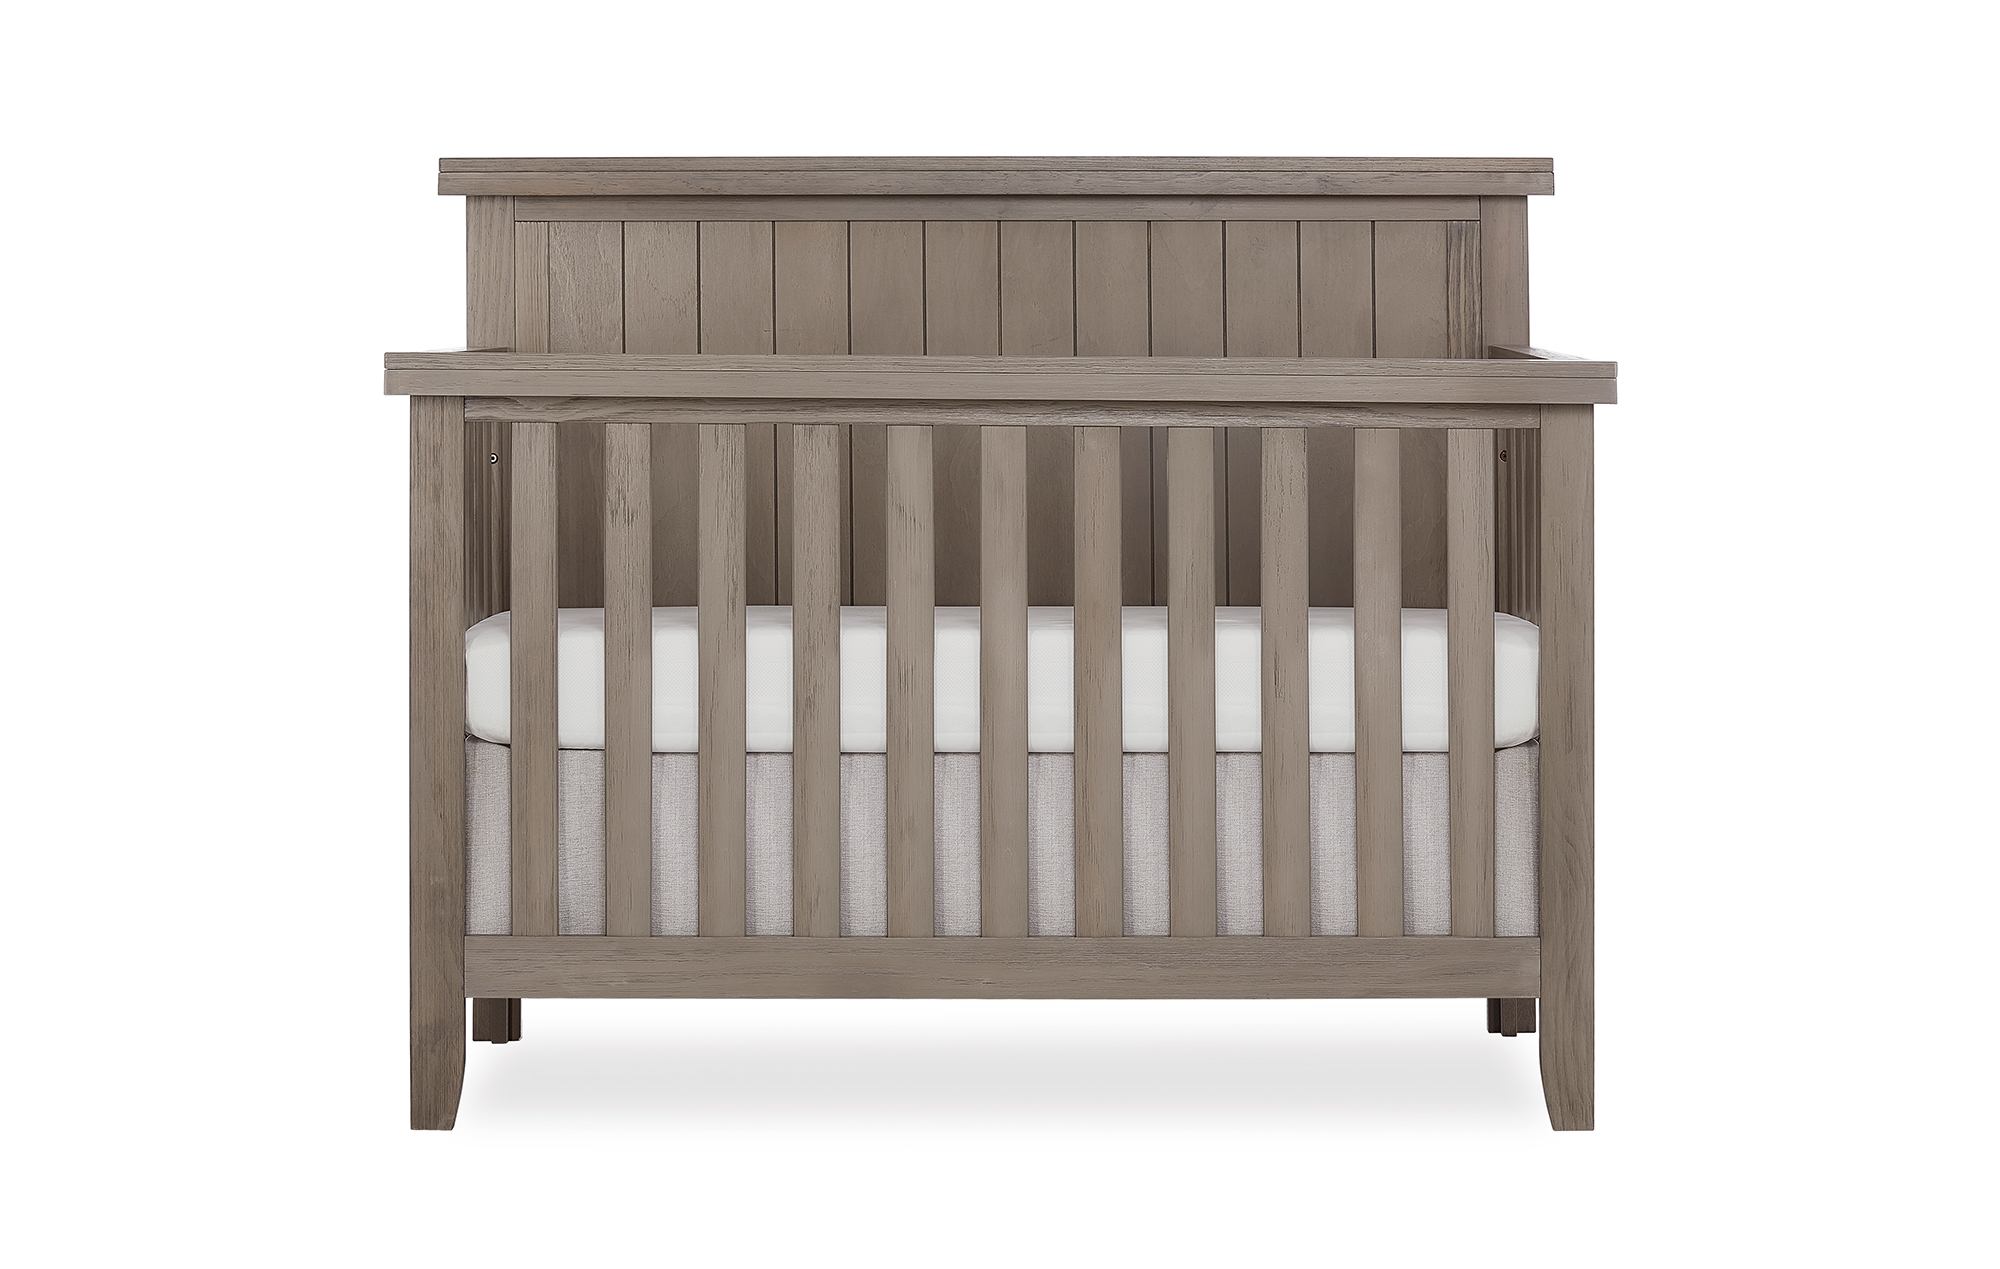 772BR-OAKGY Maple Convertible Crib Front